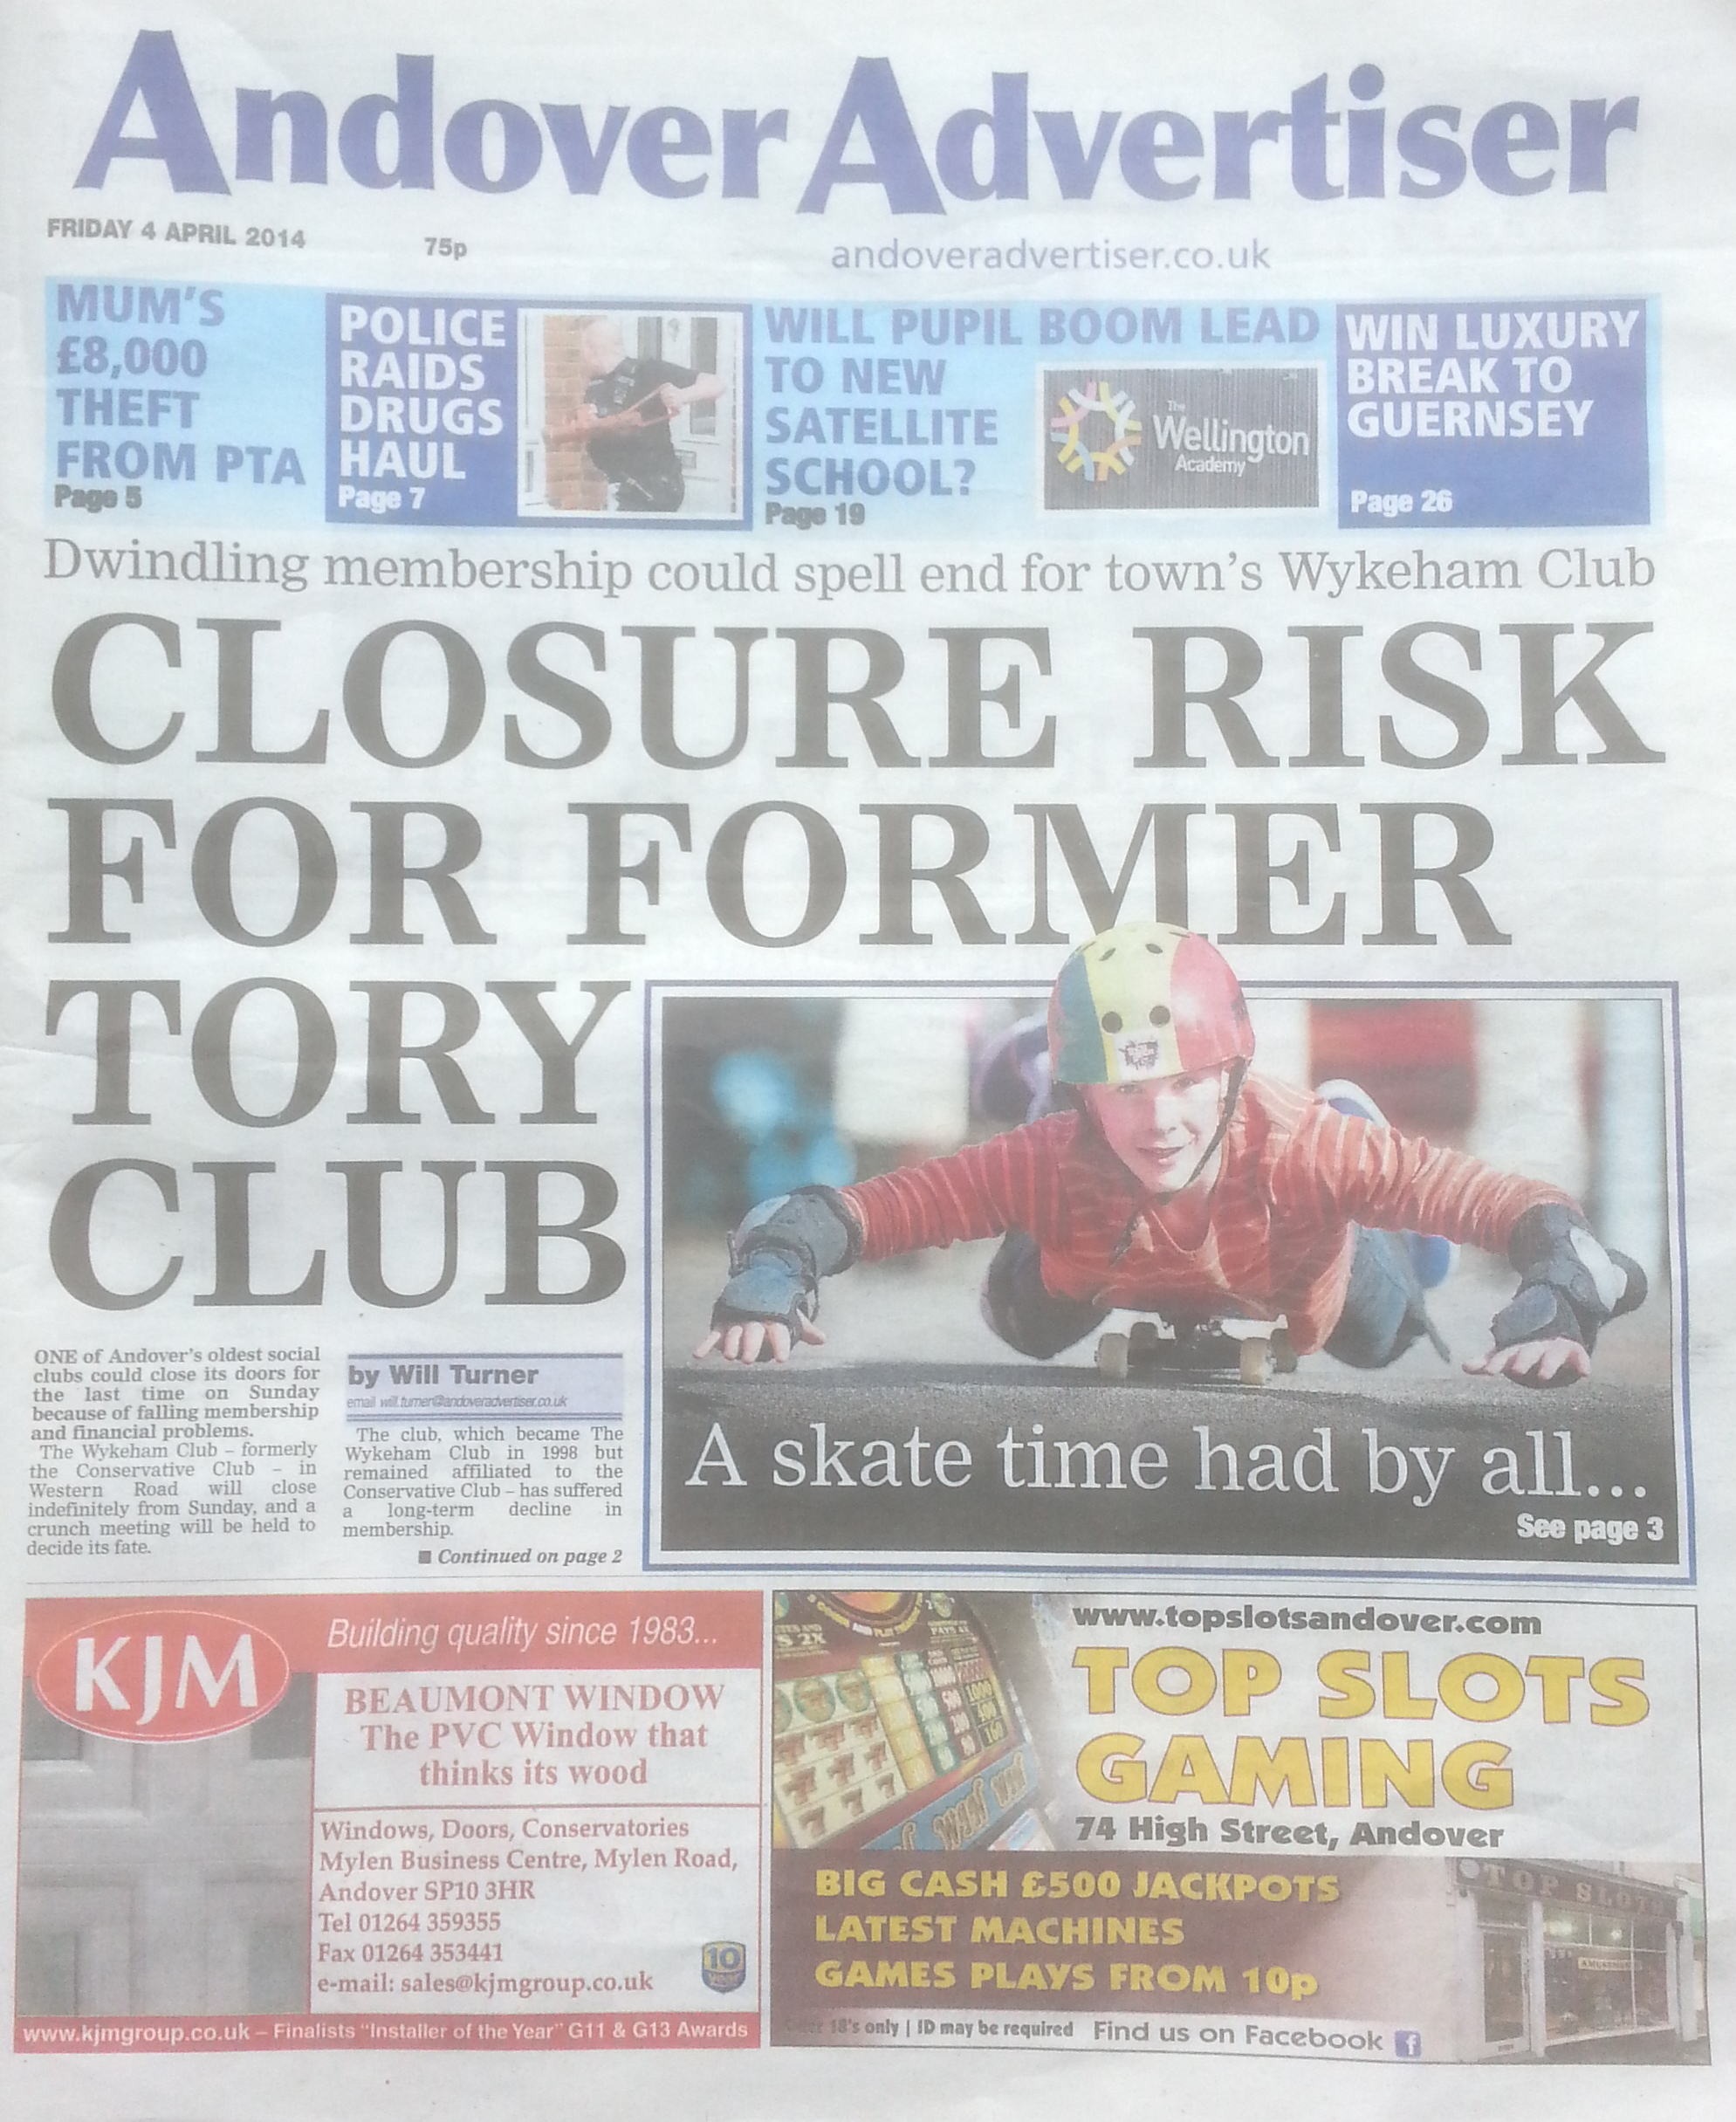 andover advertiser front page